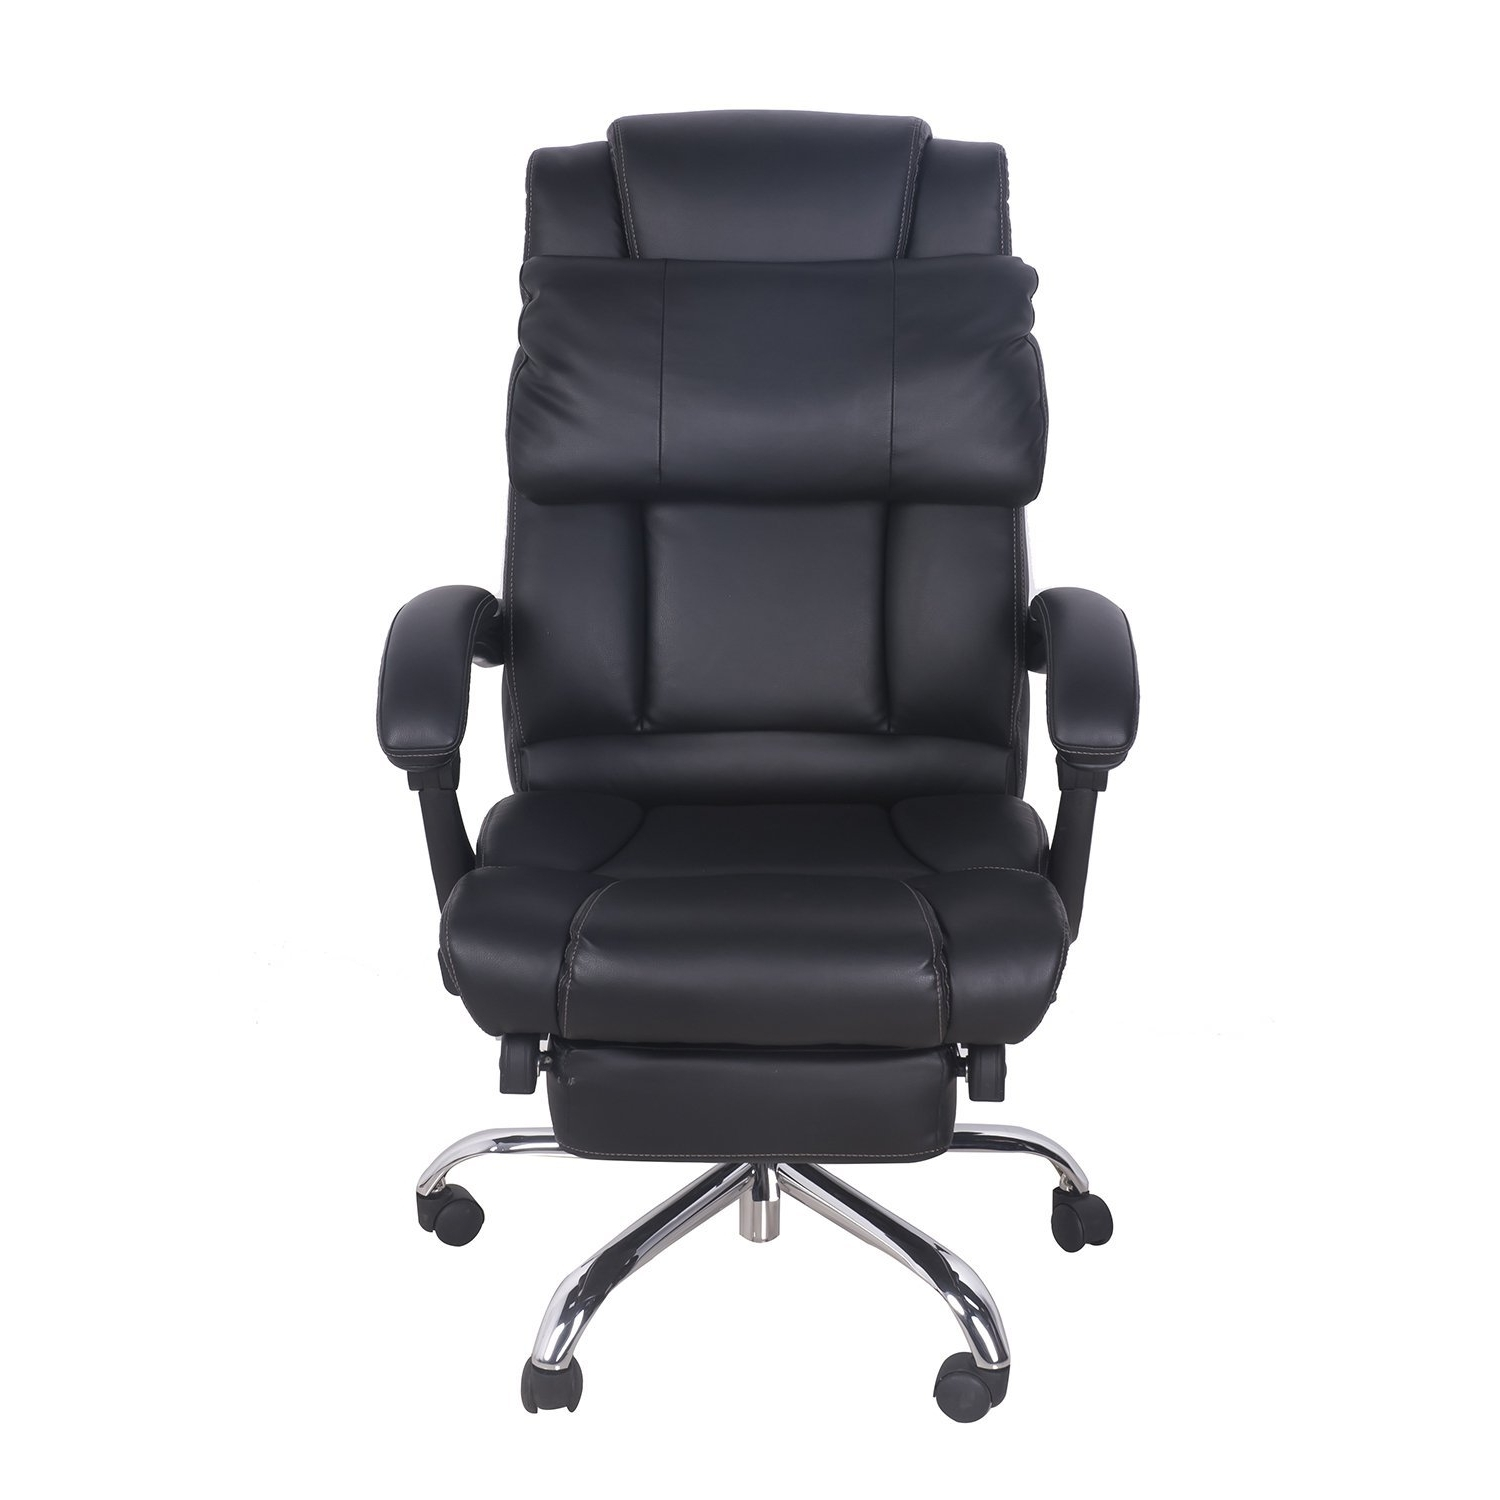 Updated Guide For 2018 Intended For Tall Executive Office Chairs (View 19 of 20)